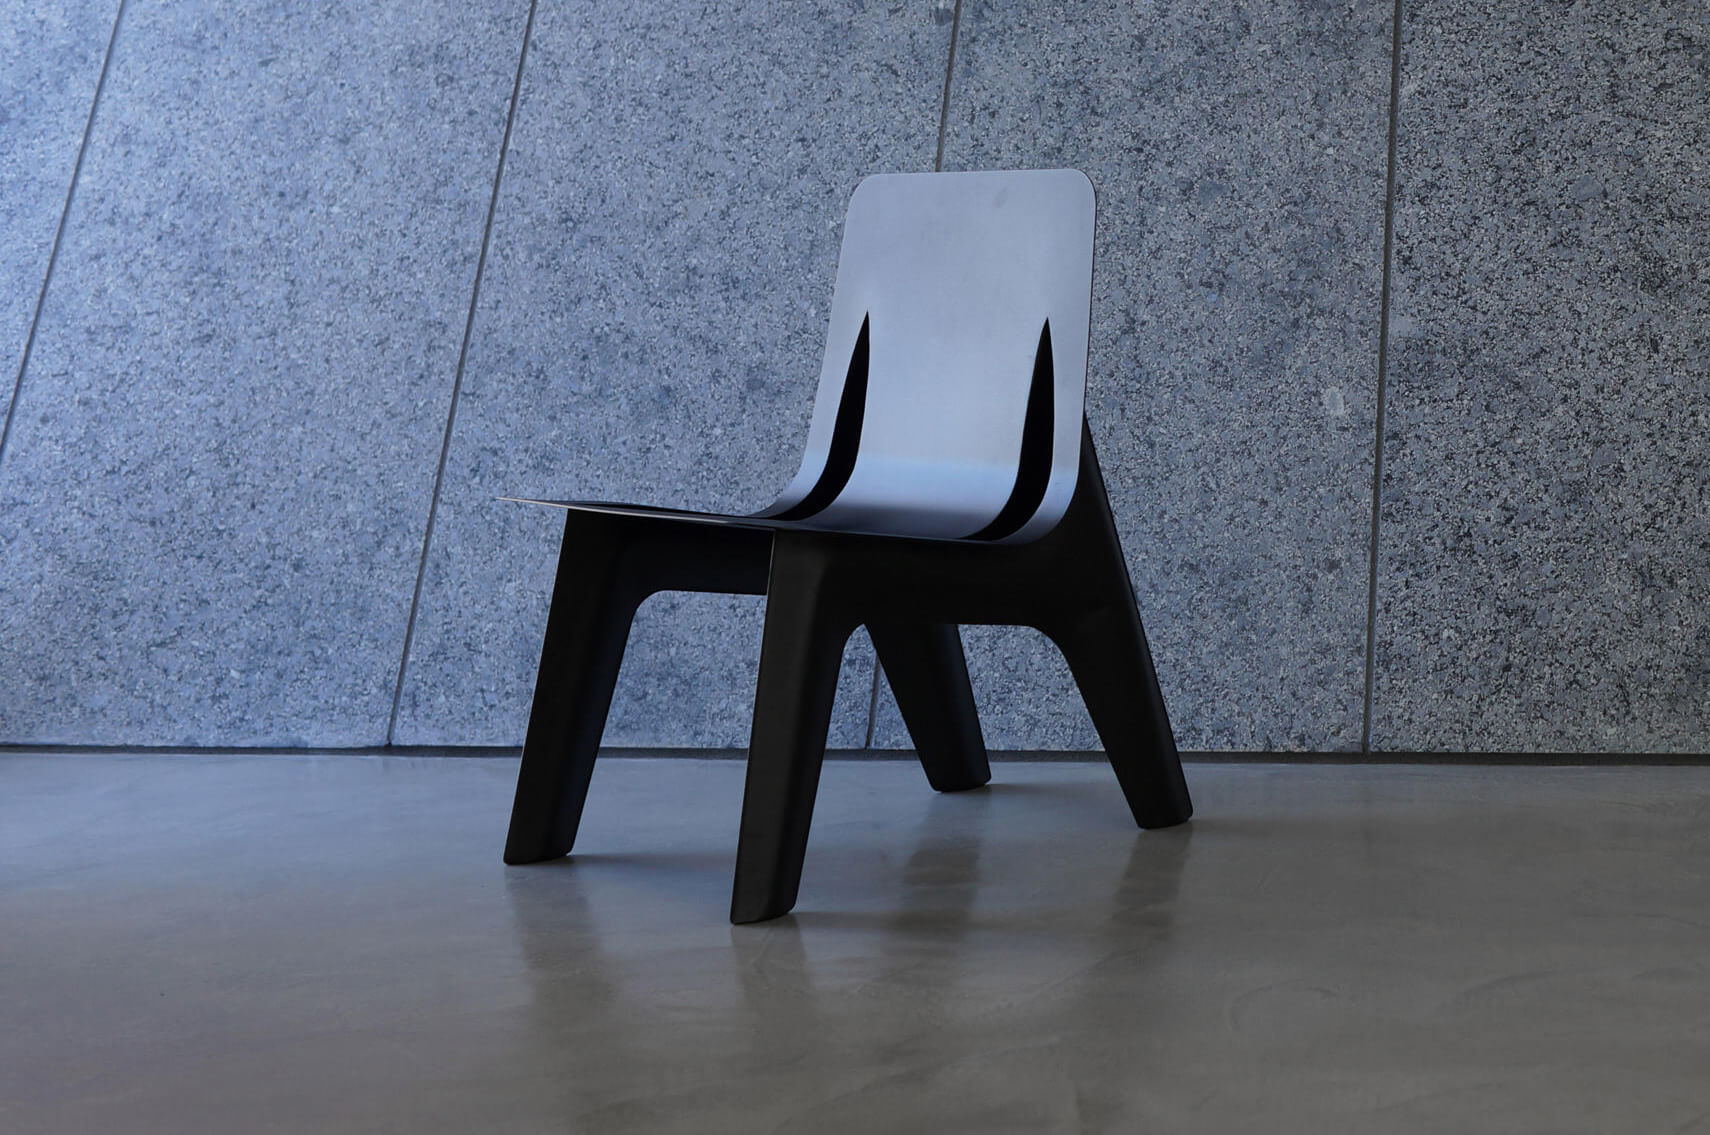 j-chair chair by zieta studio